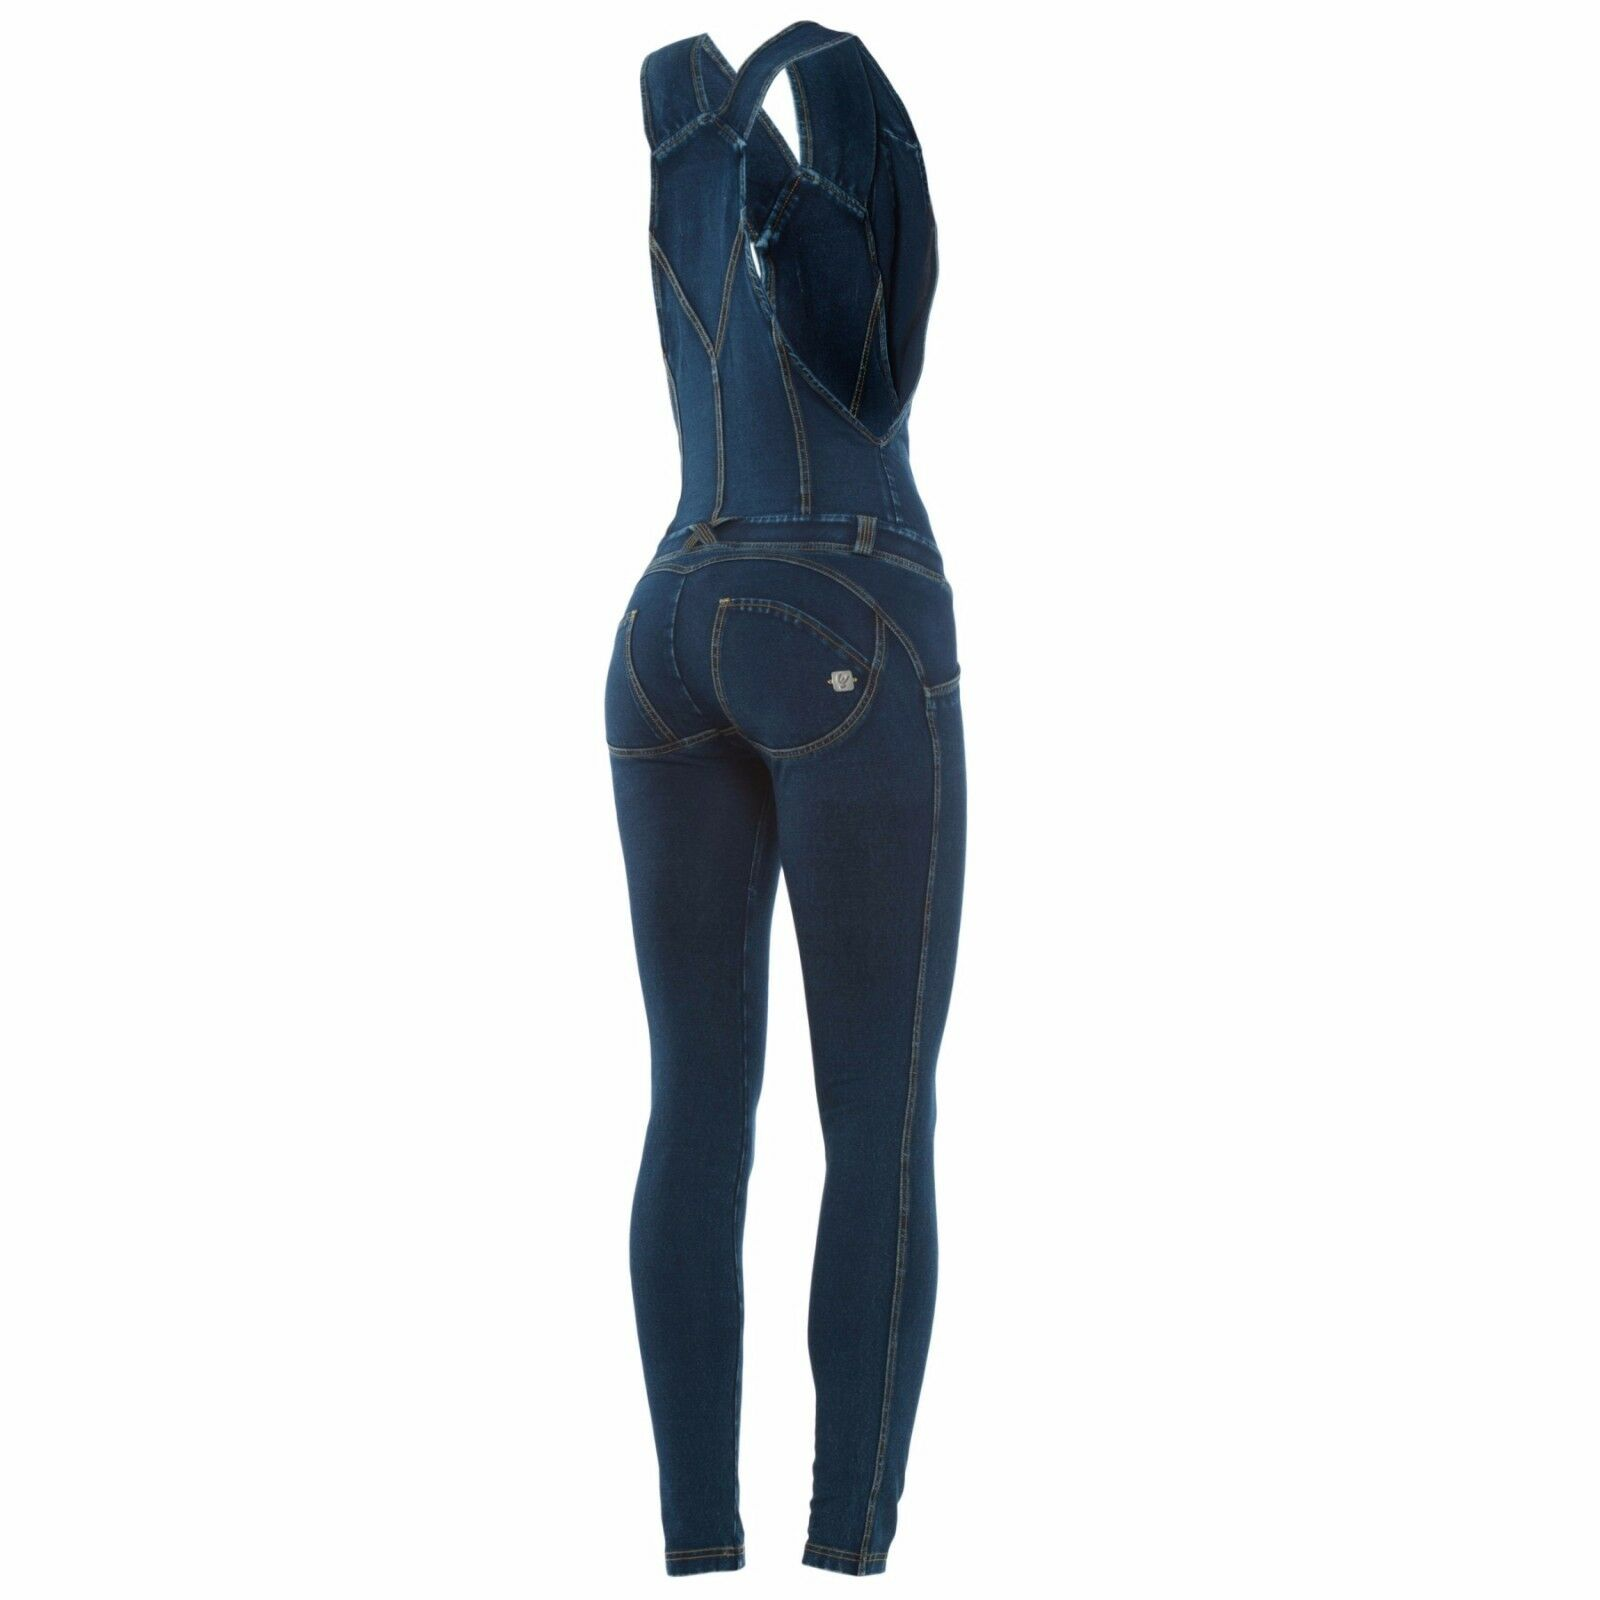 SCONTO 10% FREDDY WR.UP WRUP16J01E SALOPETTE XS S M XL  DENIM TUTA JEANS PUSH UP